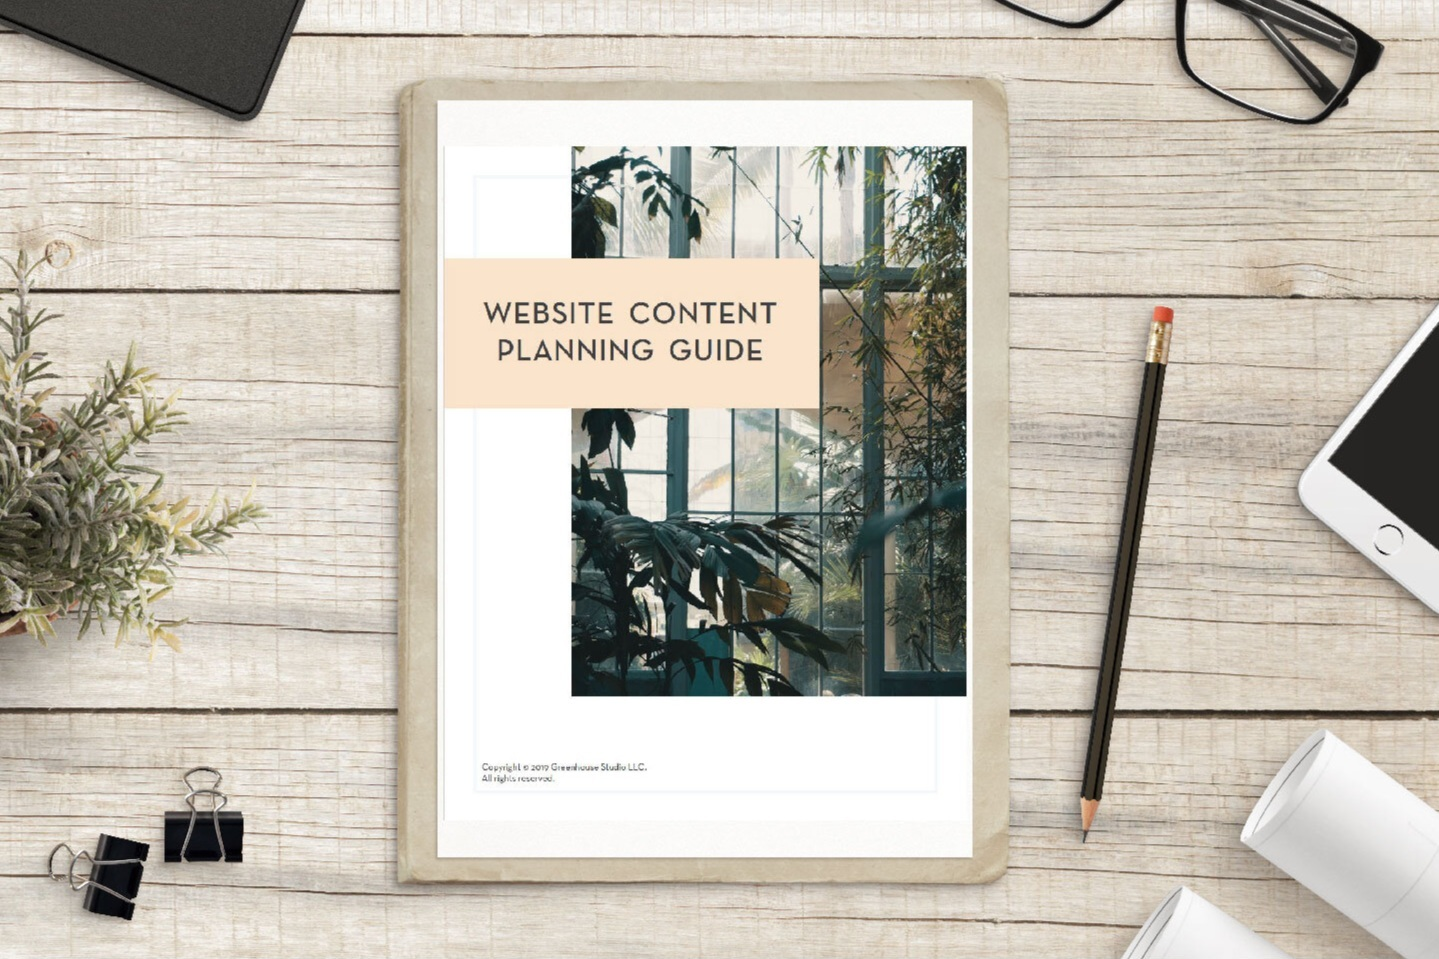 Greenhouse Studio website content planner for architects, landscape architects, interior designers, custom home builders & contractors, construction & real estate developers + investors, physicians + medical practices.